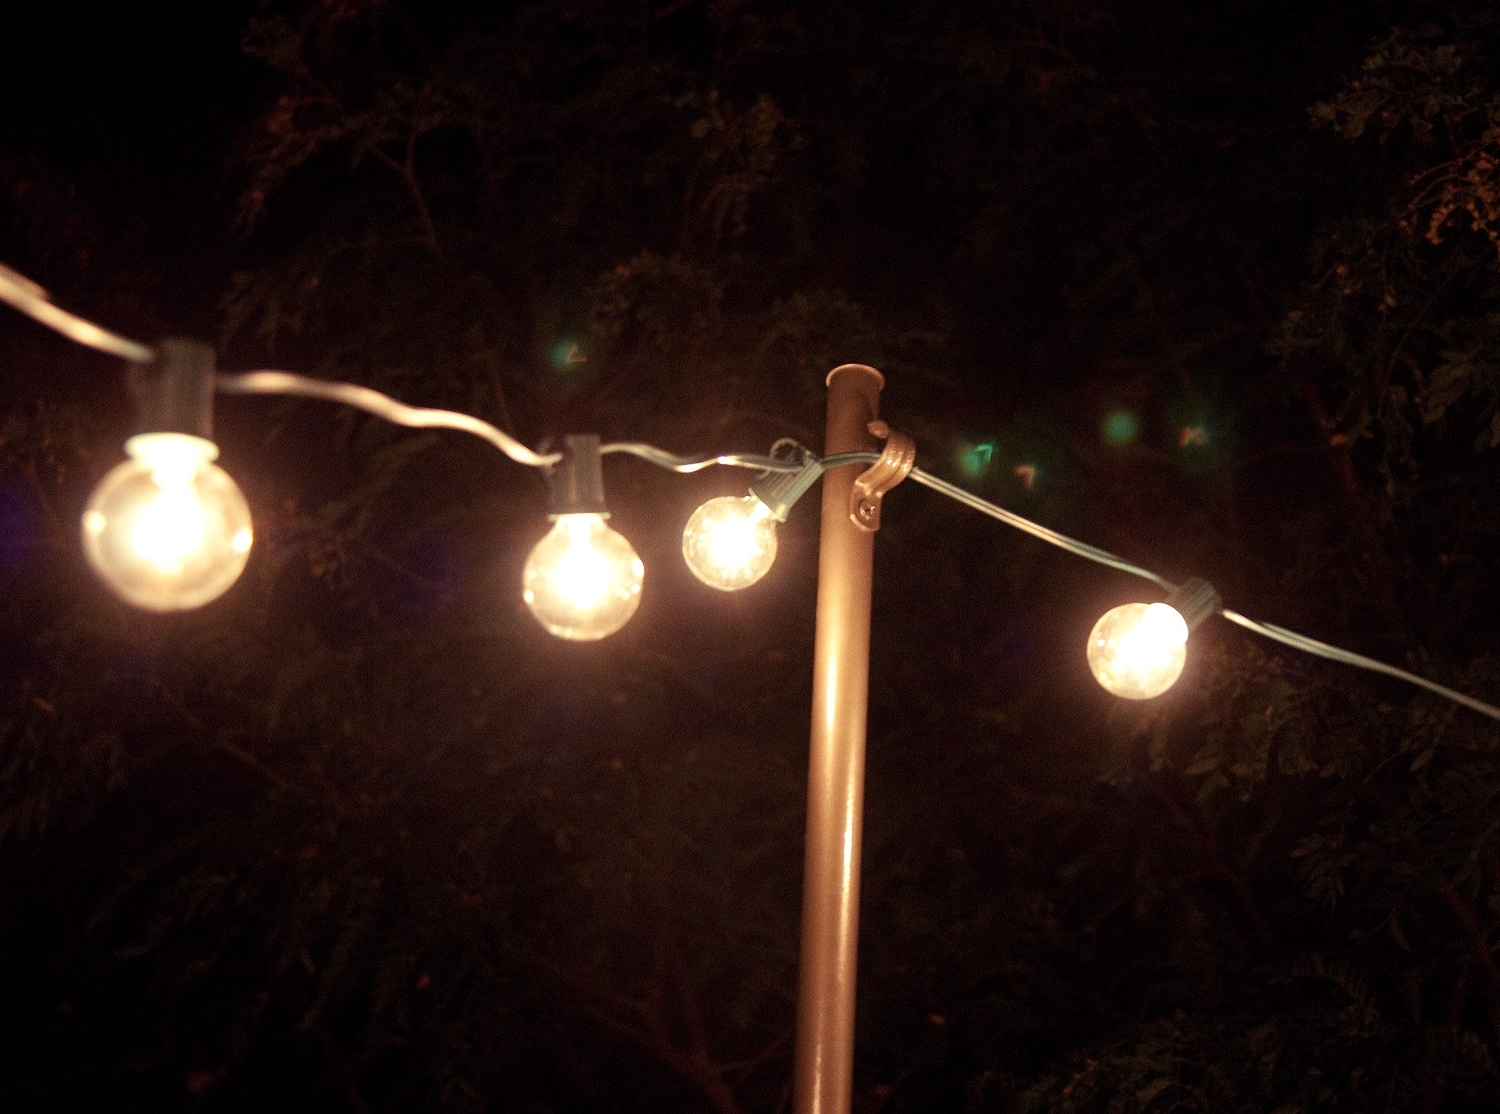 Solar Patio Lights Home Depot @bright July Diy Outdoor String Lights In Most Current Outdoor String Lights At Home Depot (View 10 of 20)